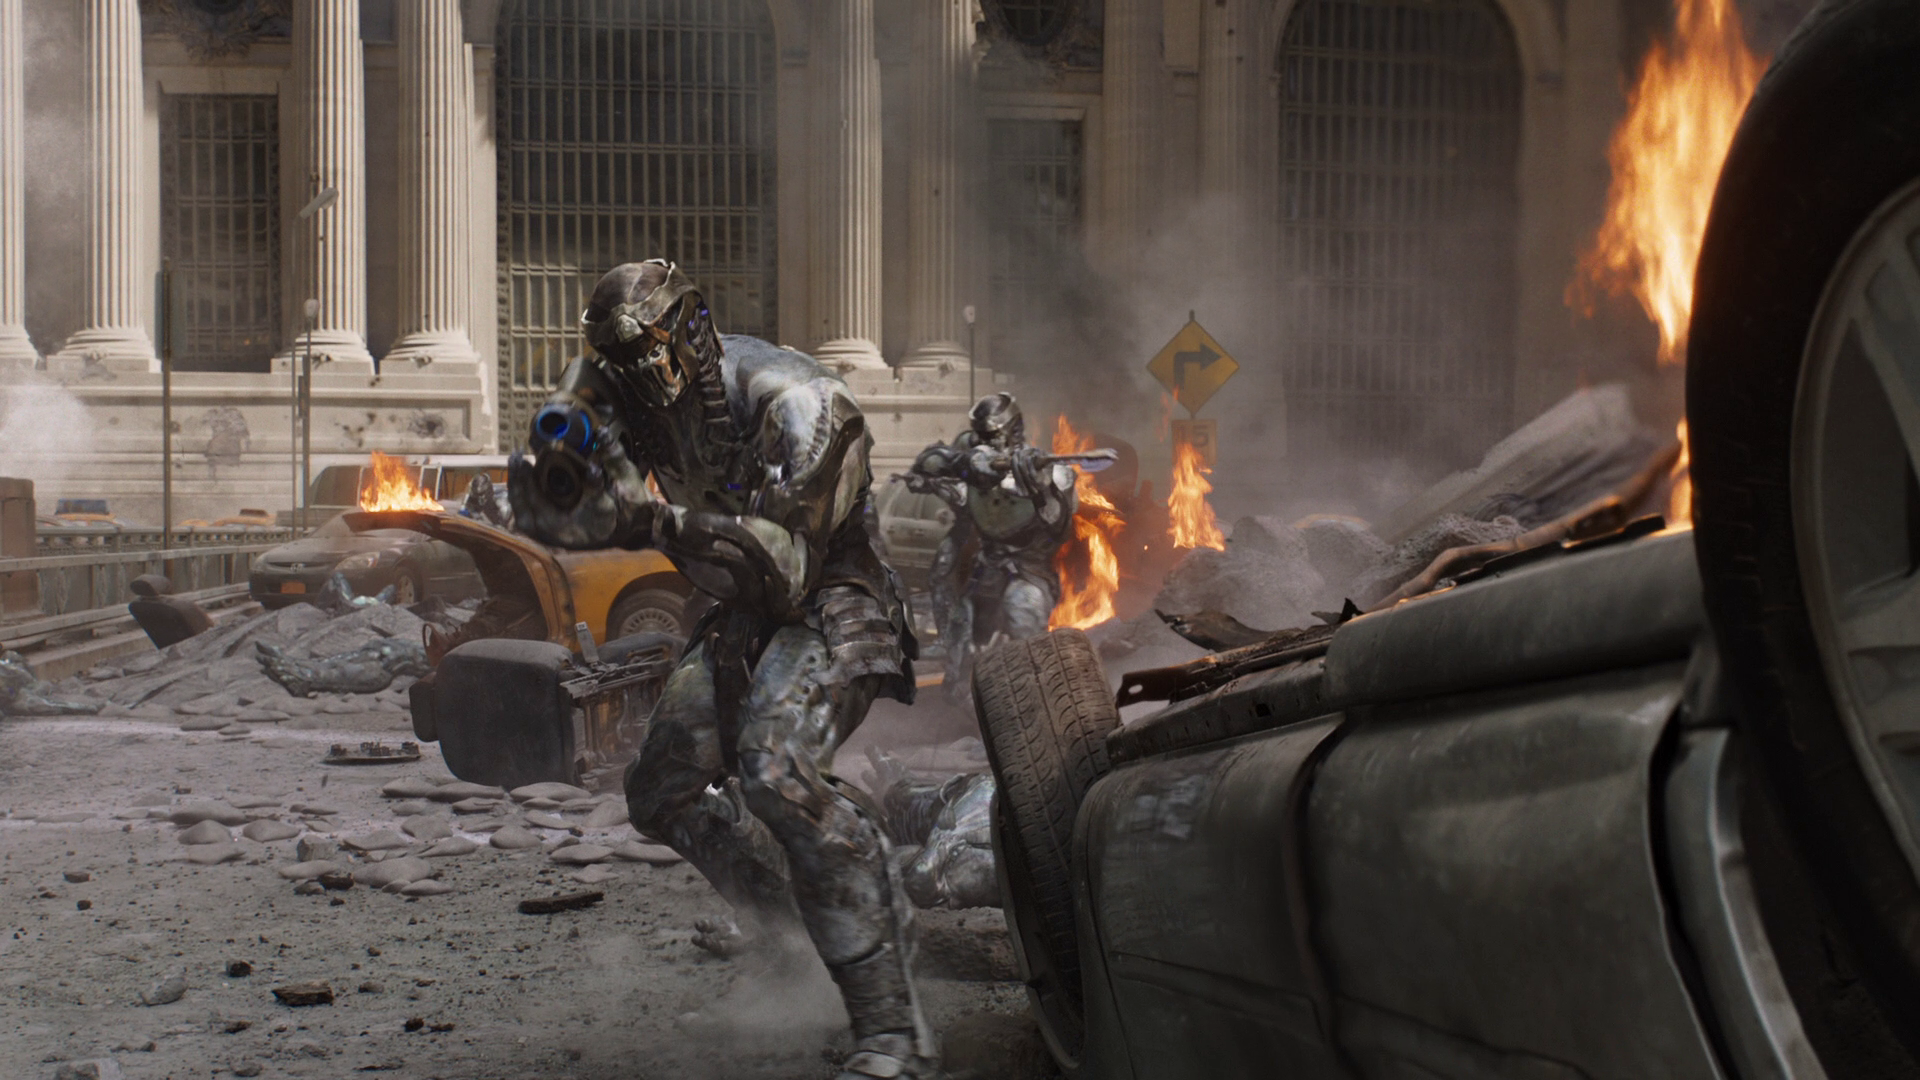 chitauri invasion marvel fan theories